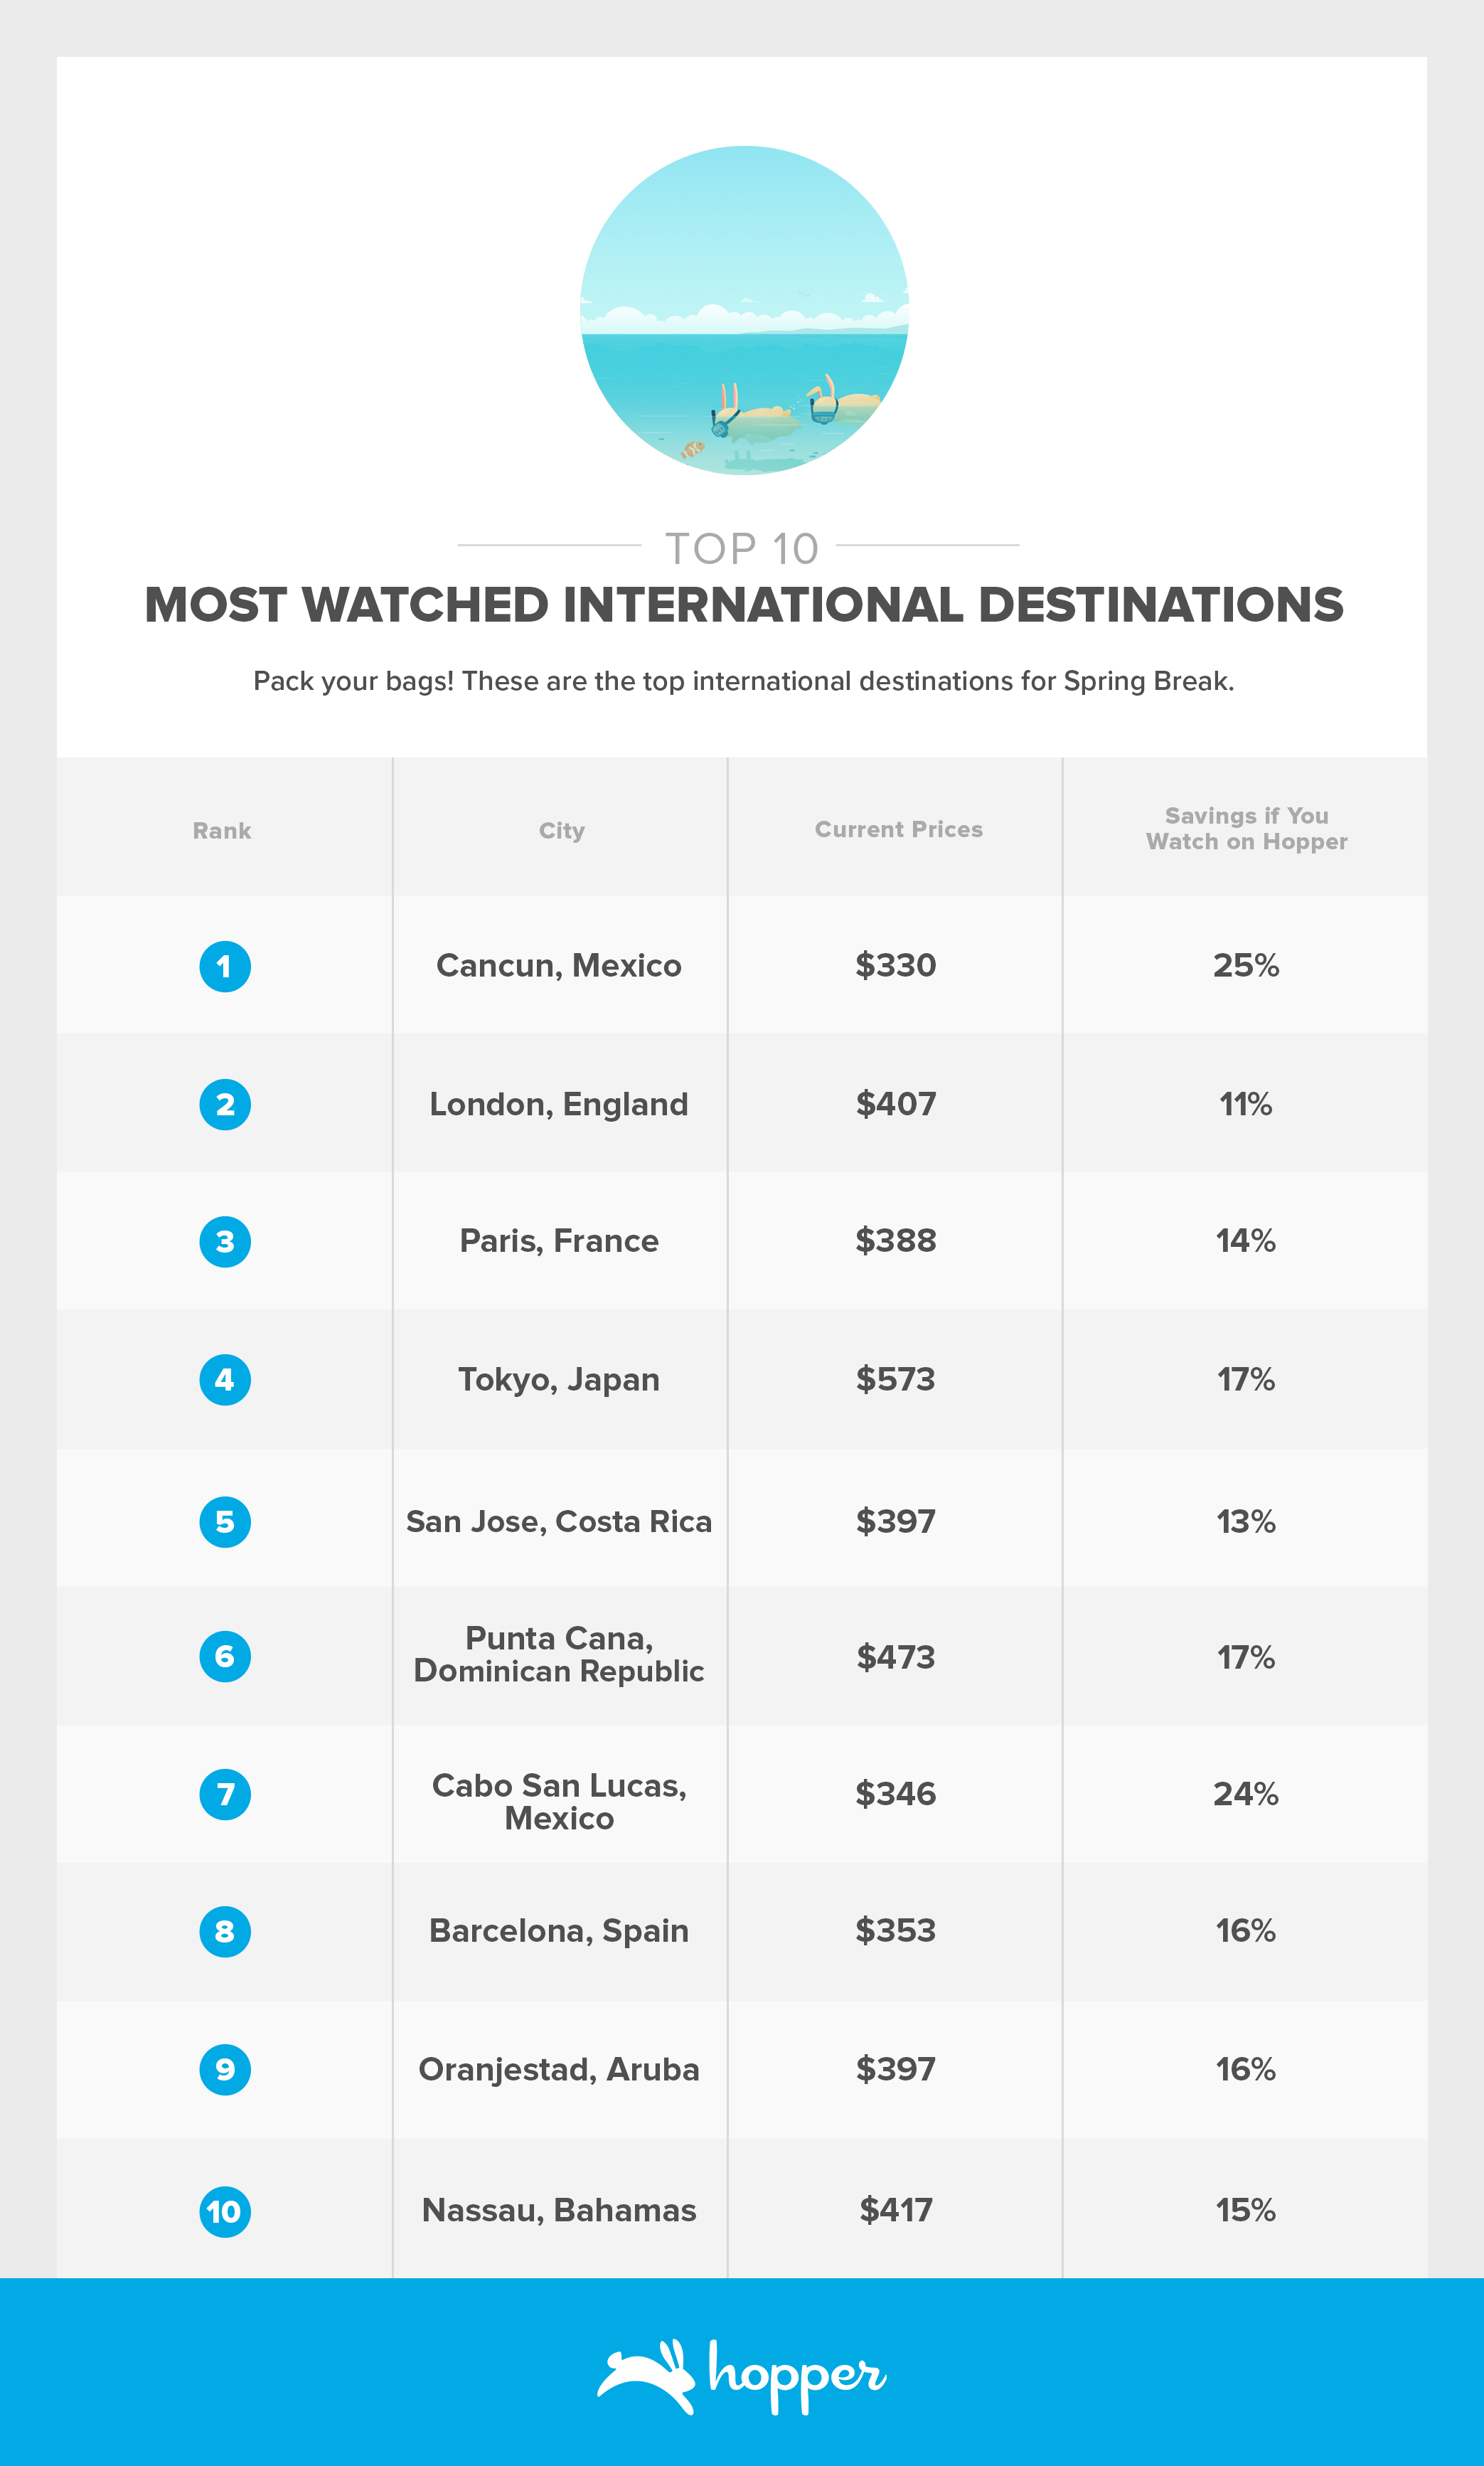 Most Watched International Destinations for Spring Break